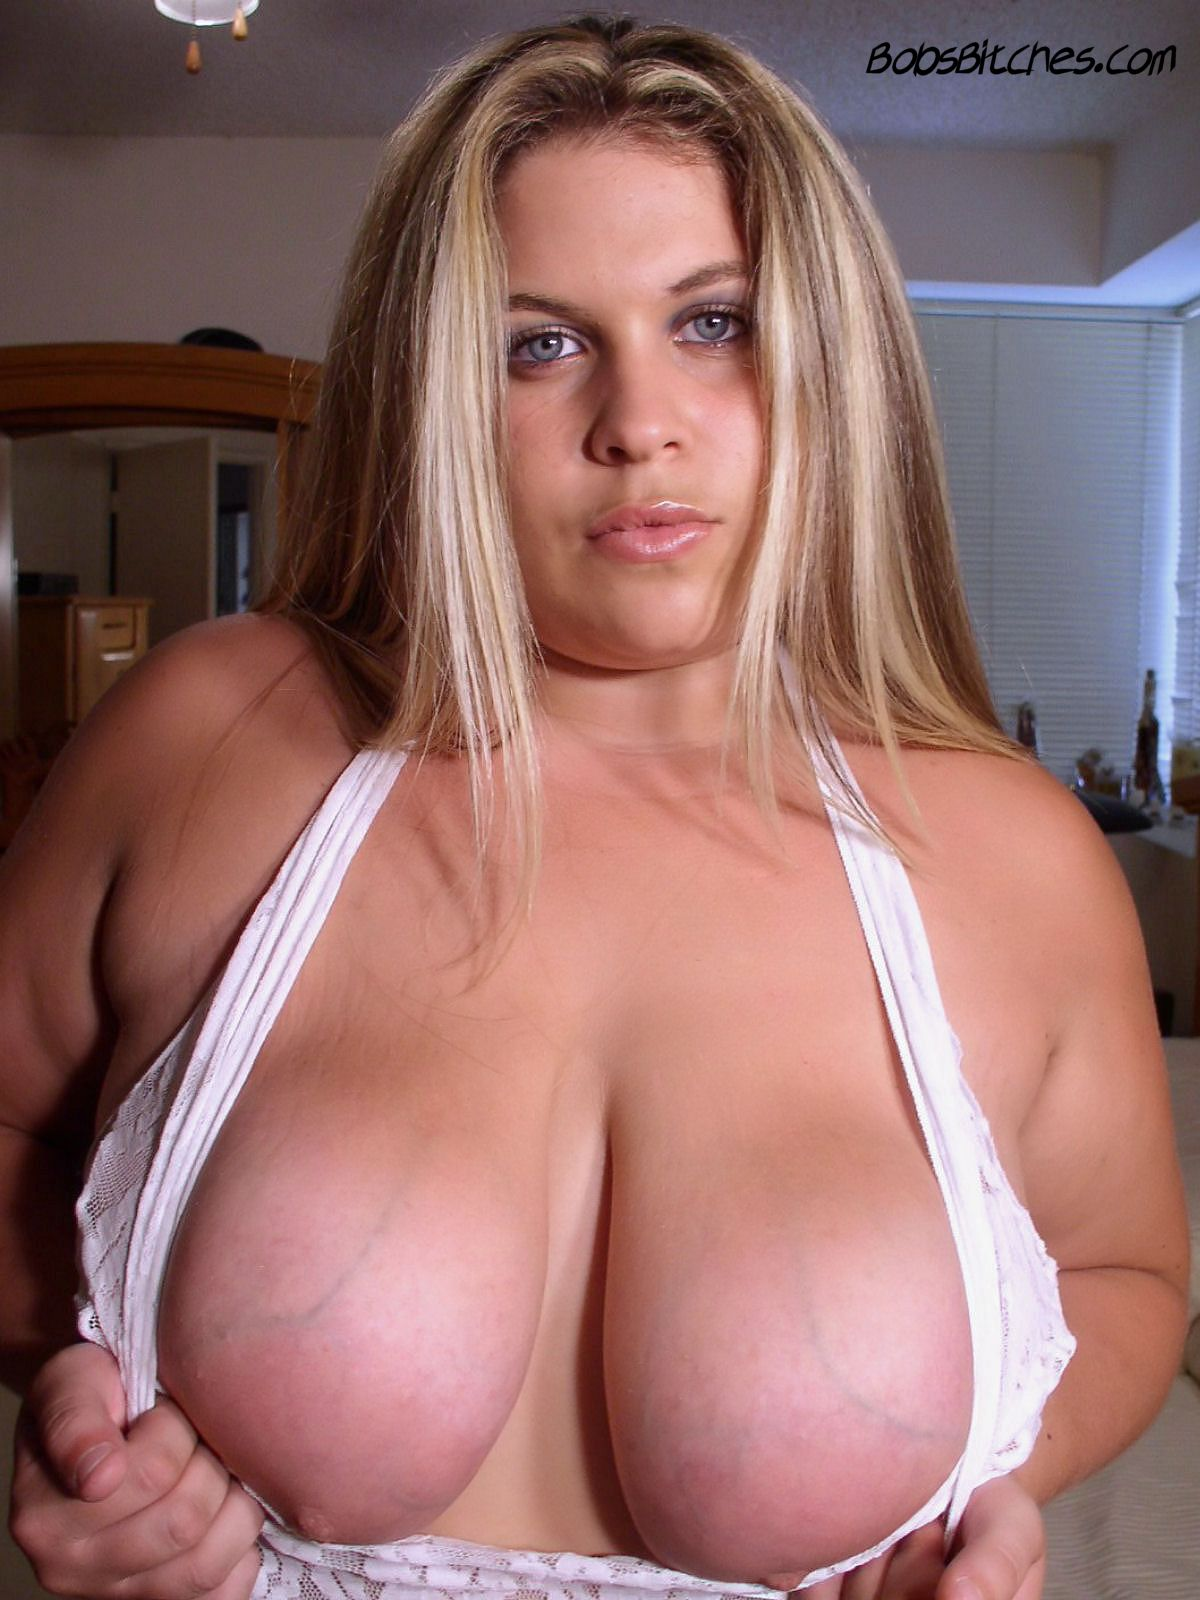 Blonde with big natural tits and deep cleavage. Say hello to Shannon.